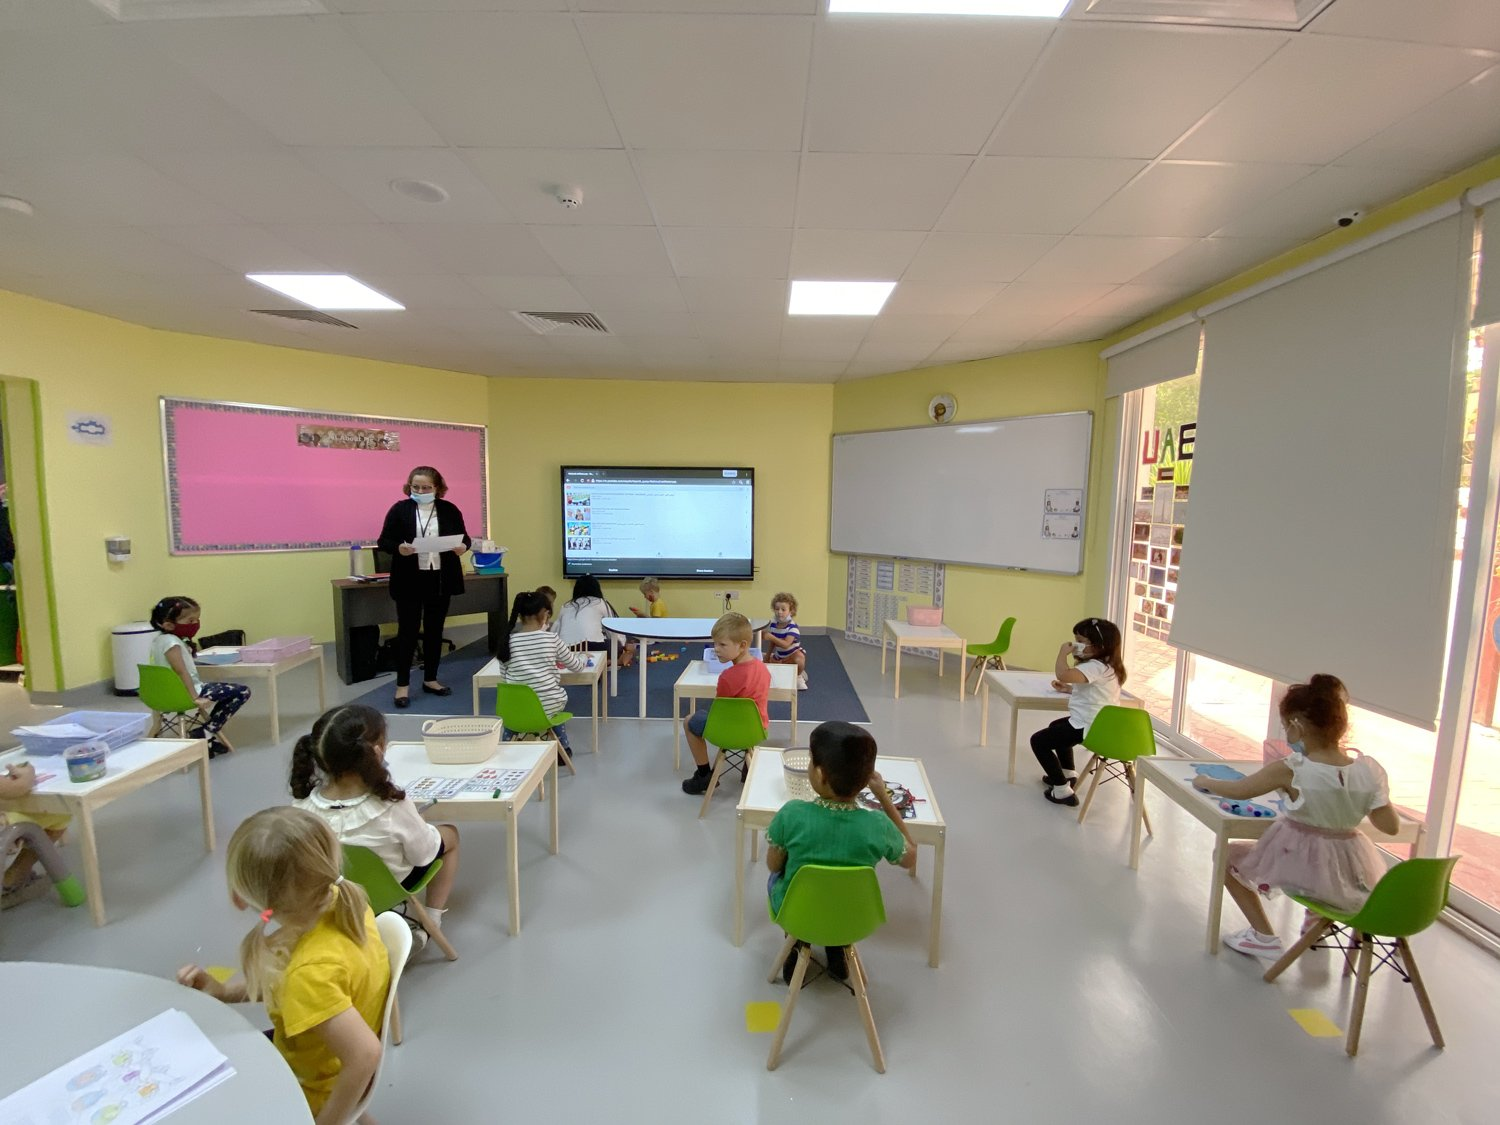 Ghaf Primary School - Learning Environment